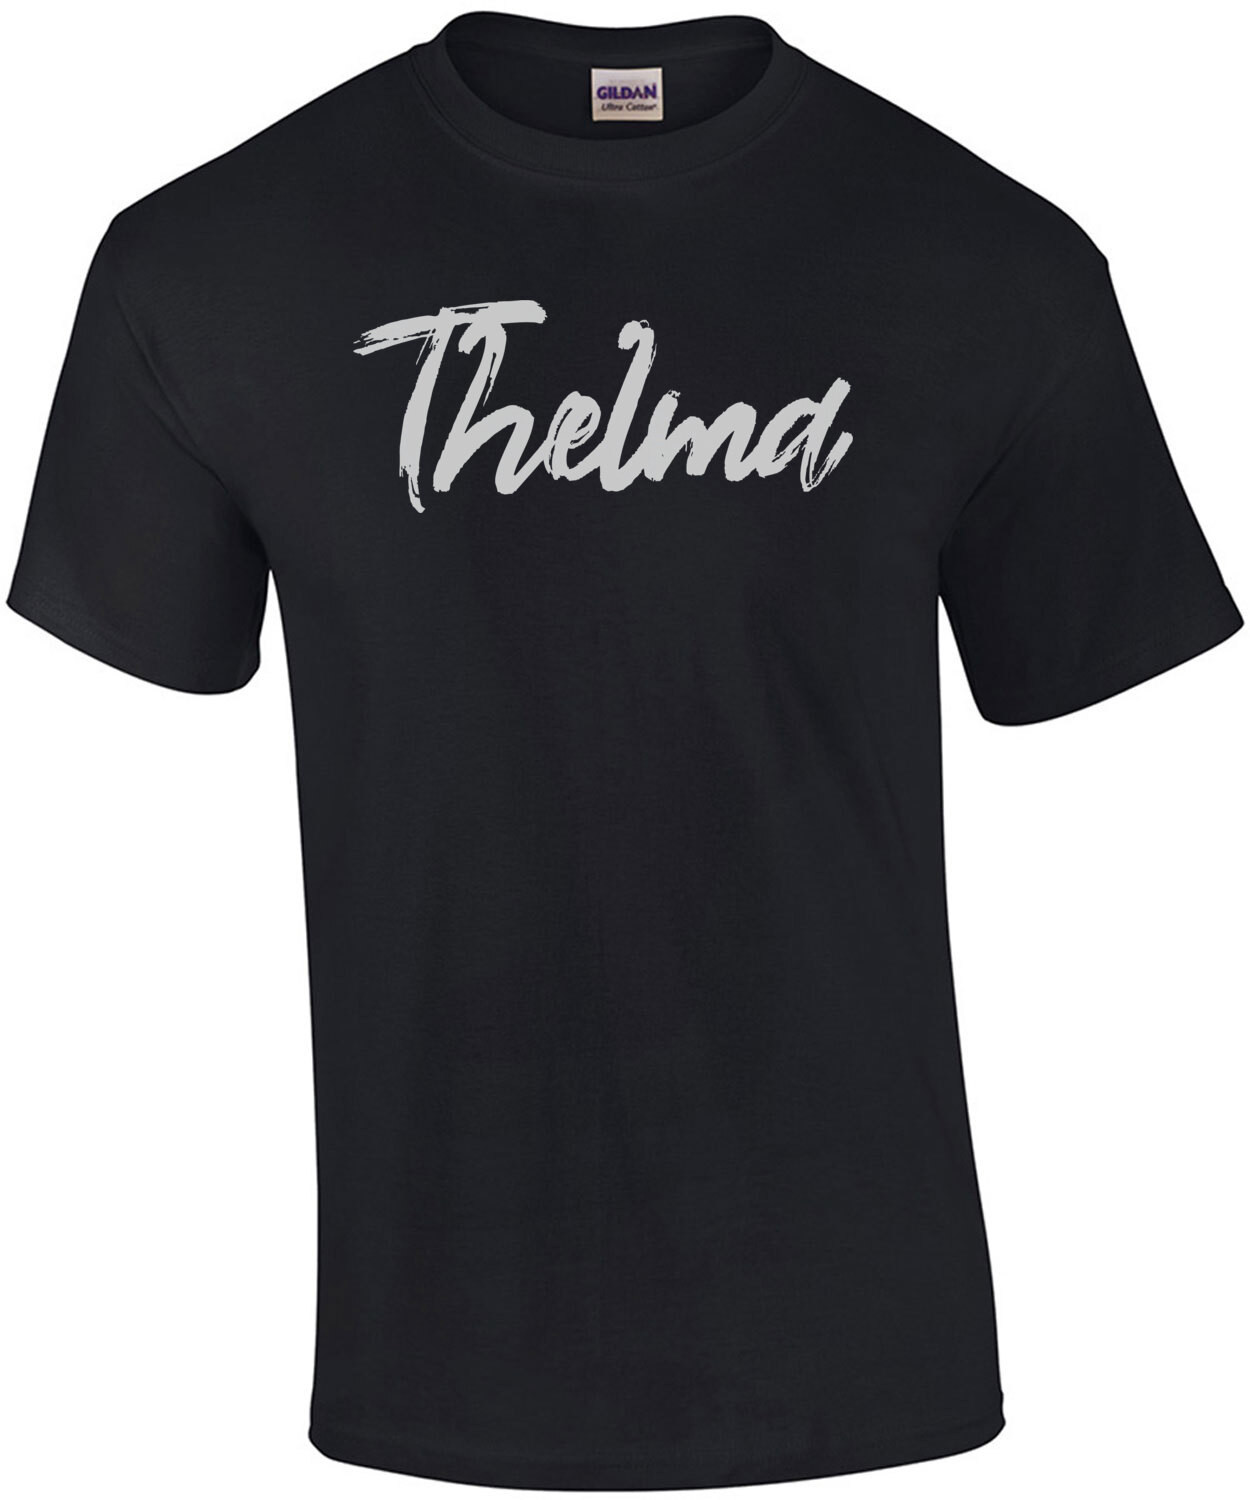 Thelma - Thelma and Louise - 90's T-Shirt